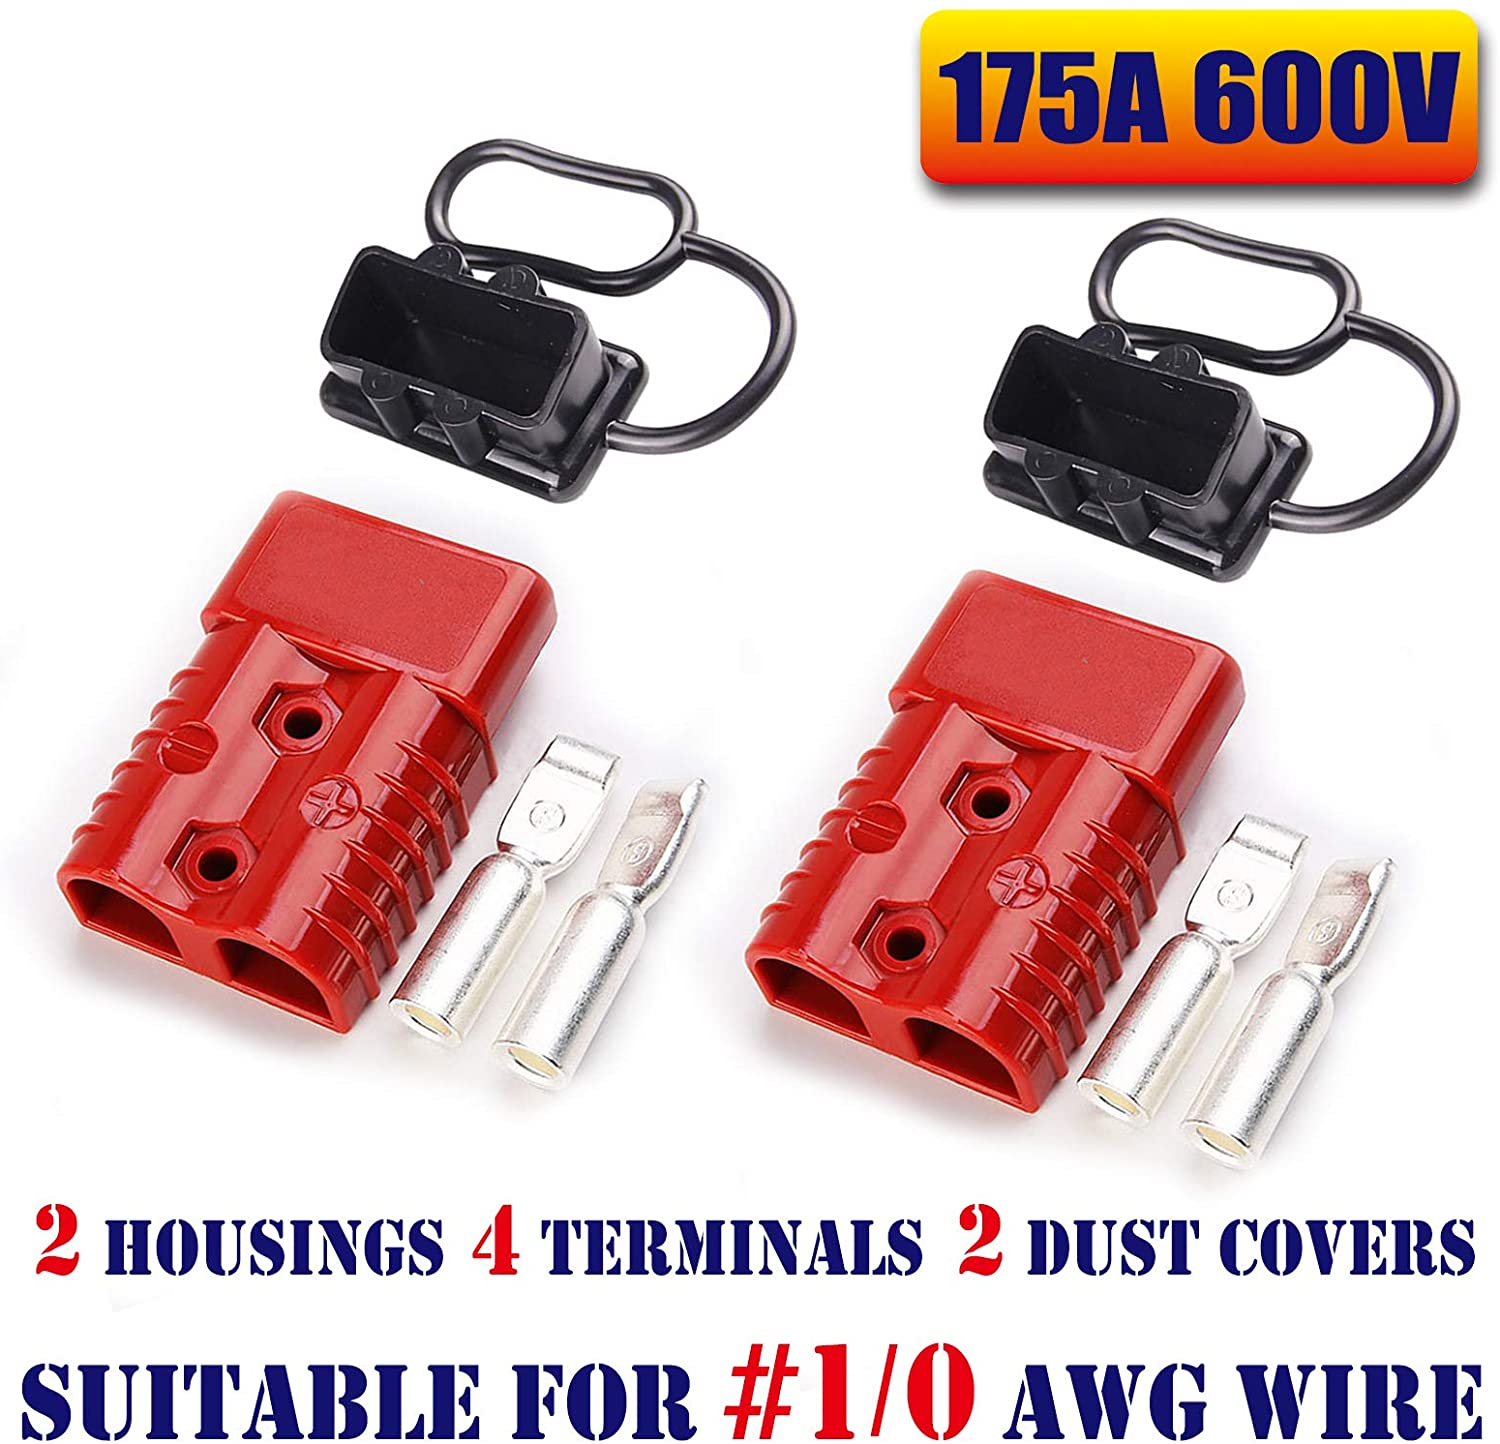 Mr.Brighton LED 175Amp Anderson Compatible 2 Pole Power Connector Plug Red w/Terminals for #1/0 AWG Wire[2 housing+4 Terminal pins+2 dust Covers]